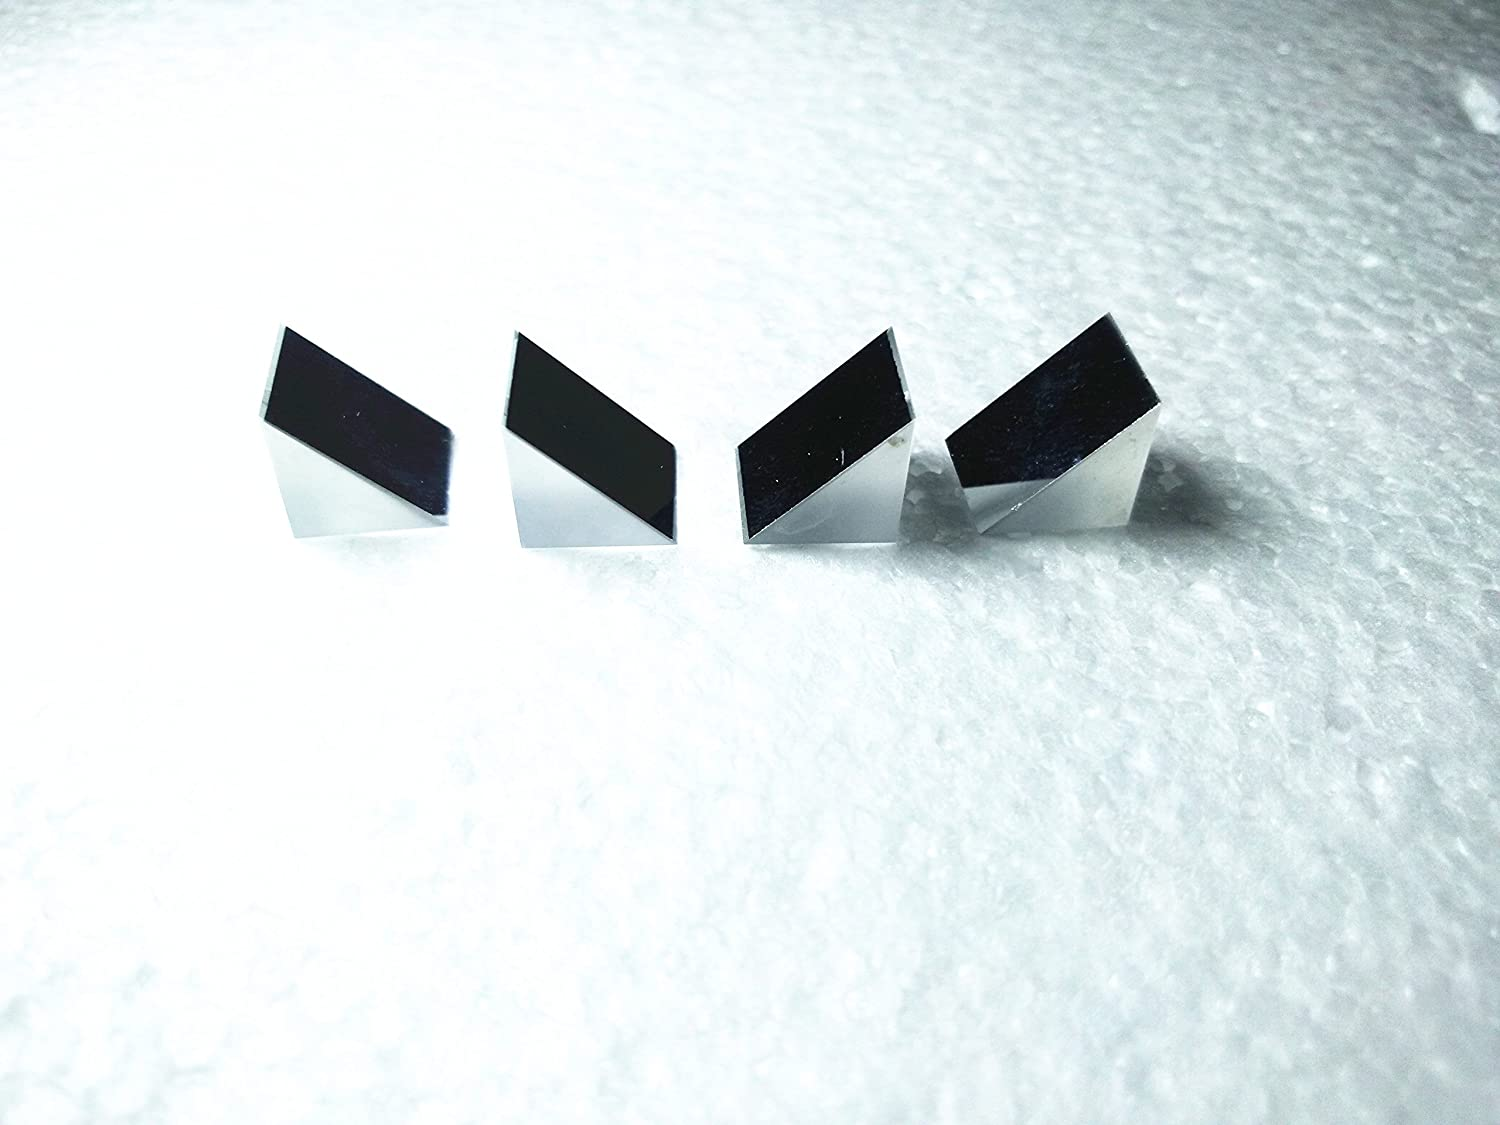 KUNHEWUHUA 4pcs 10x10x10mm Optics Prism Glass Right Angle Slope Reflecting